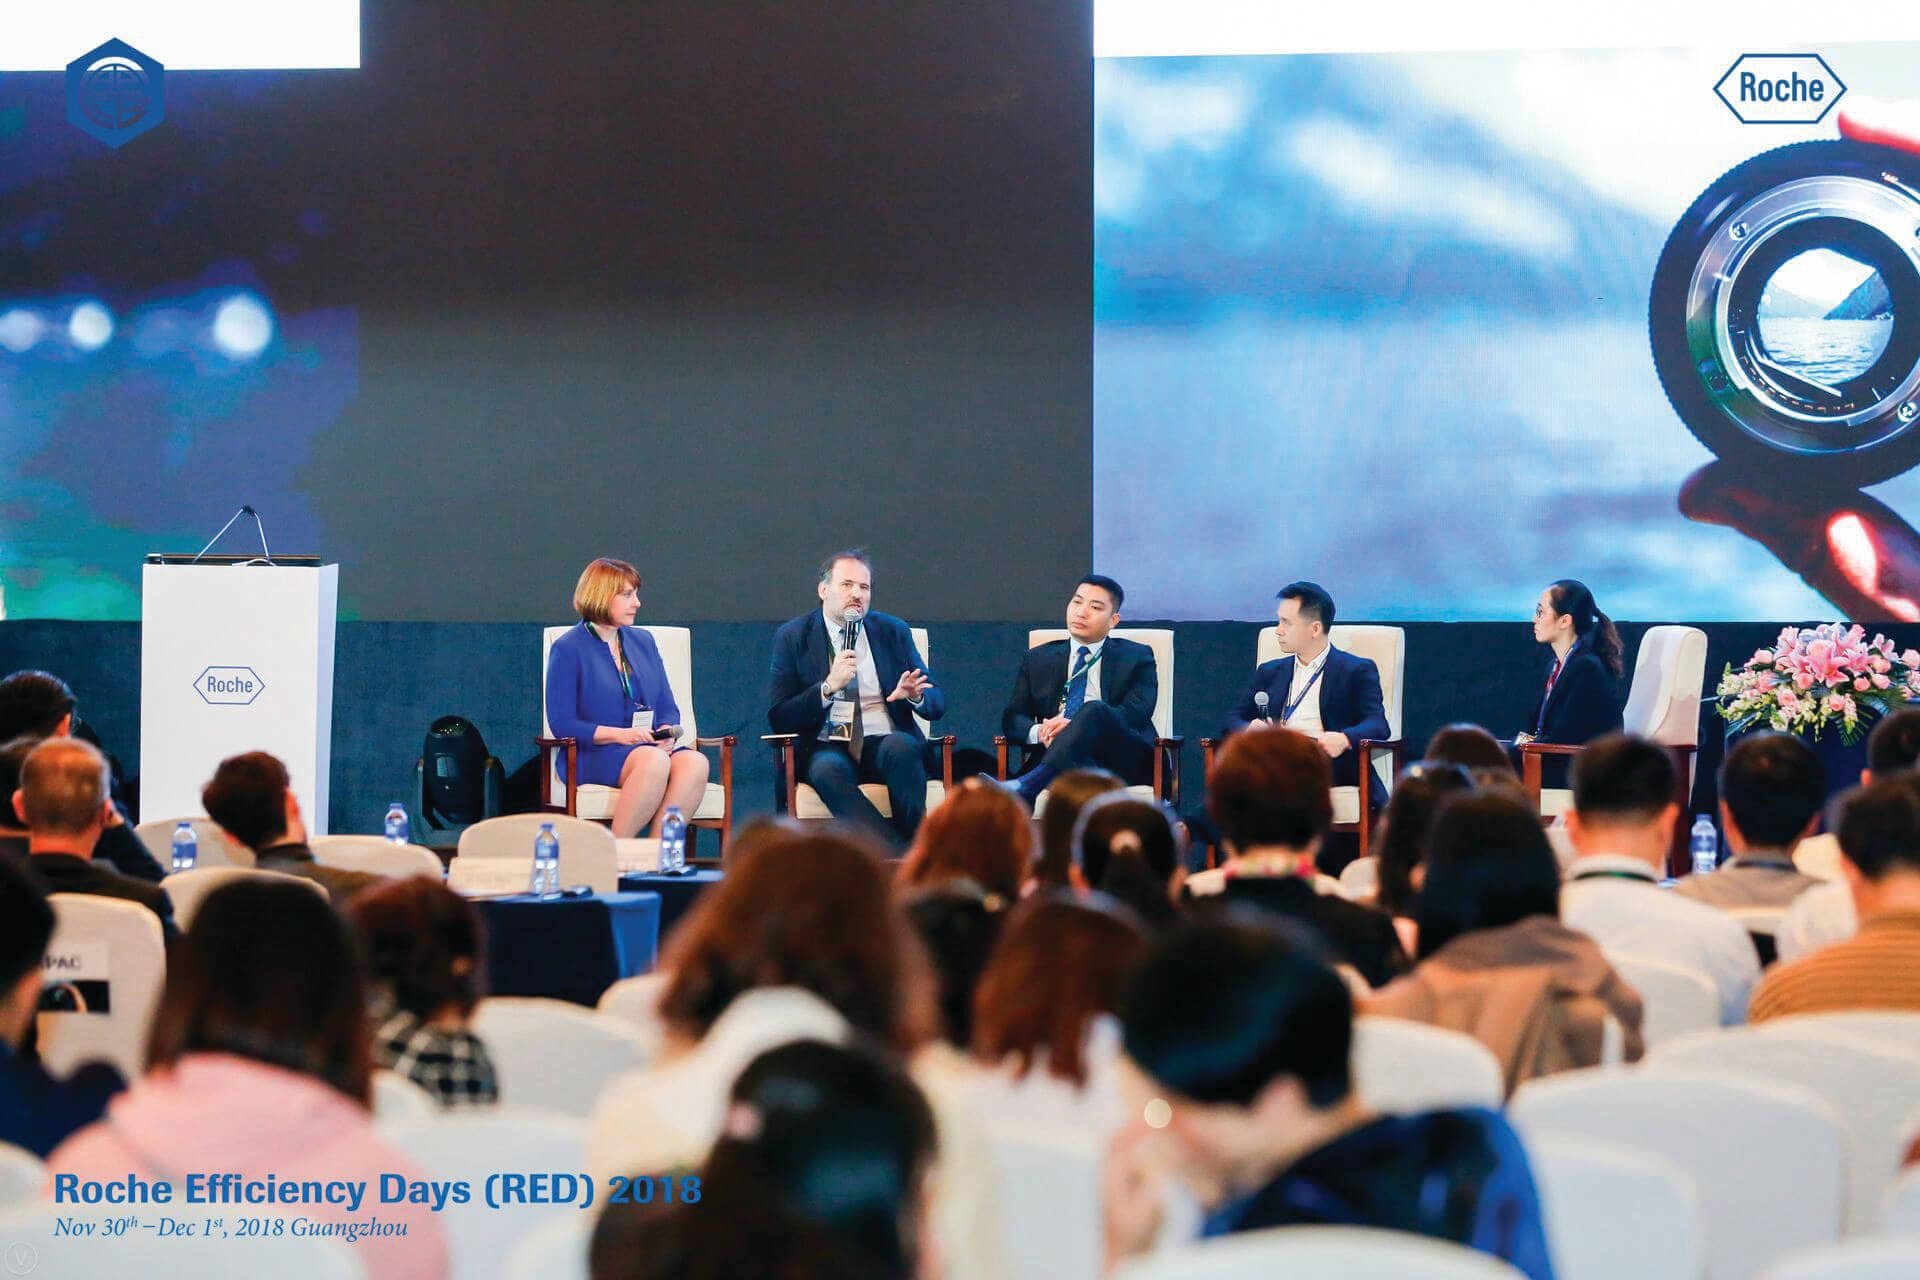 Healthcare Pannel Discussion featuring Dr Virginia (Jennie) Thurston, Dr Antonio Leon, Dr Mohd Jamsani bin Mat Salleh, Prof Lei Zheng, Prof Wei Bao Jun at Roche Efficiency Day (RED), Guangzhou, China – featured in Roche Diagram healthcare magazine publications.